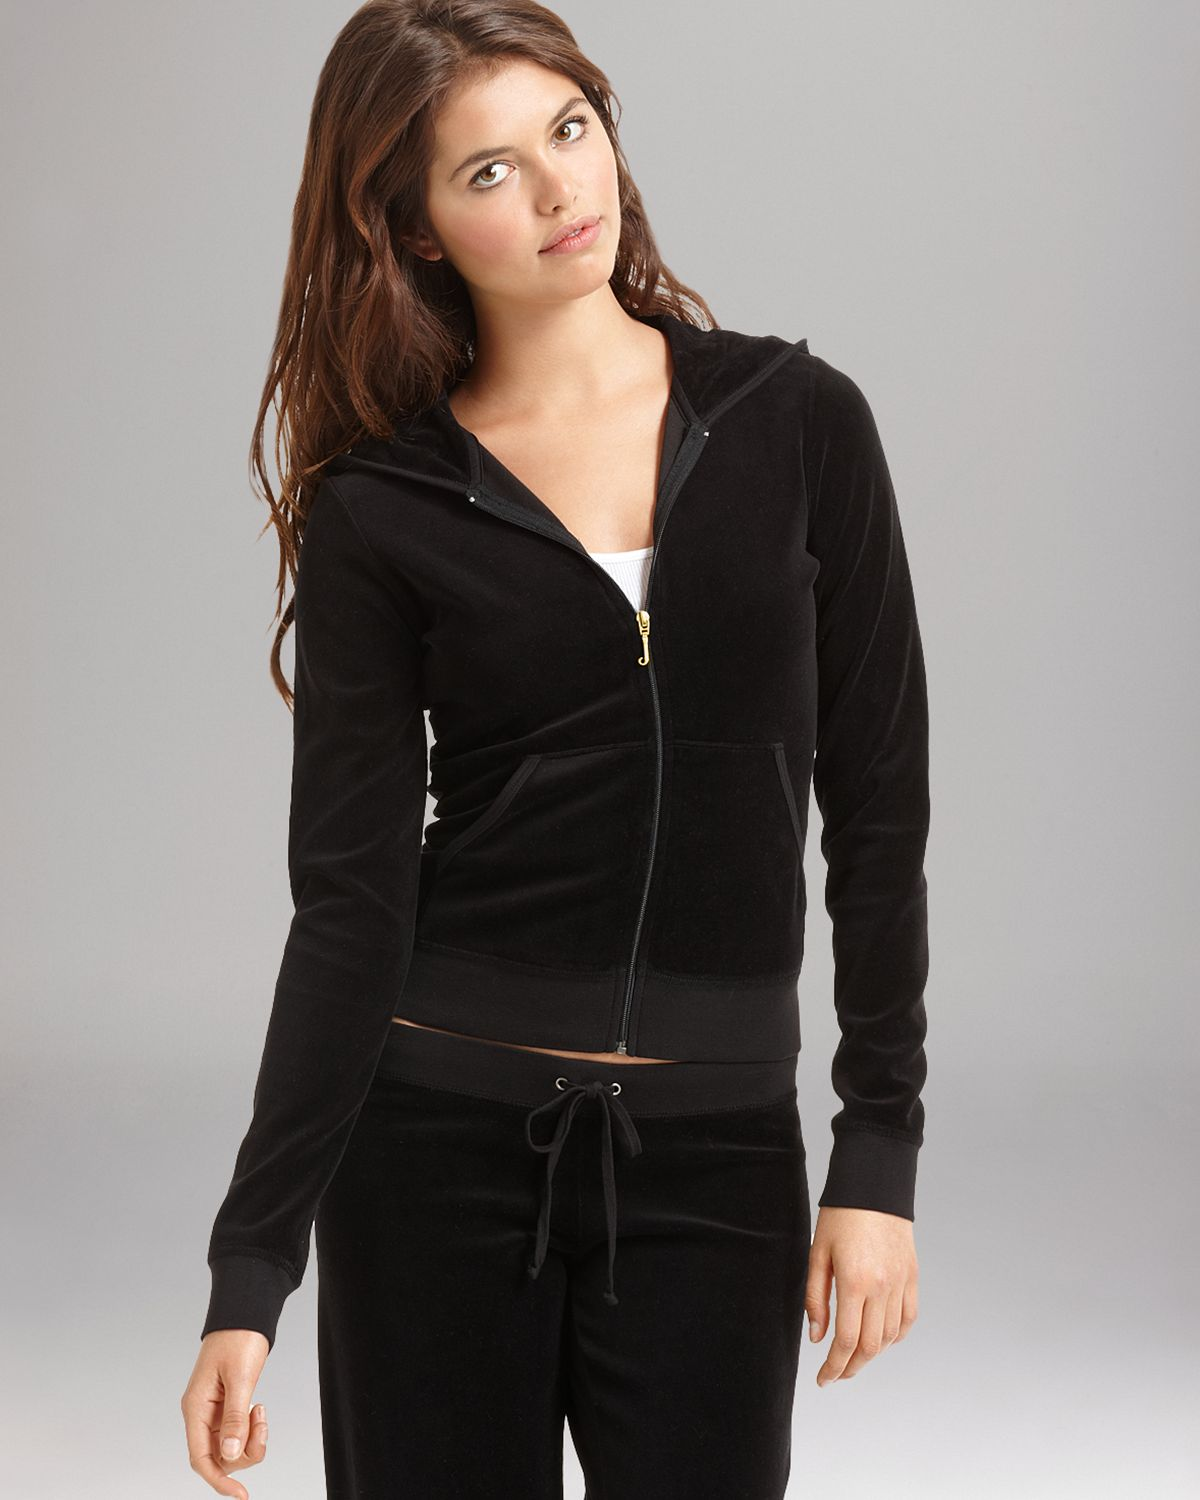 Lyst - Juicy Couture Velour Hoodie in Top Hat in Natural e012efbf5d